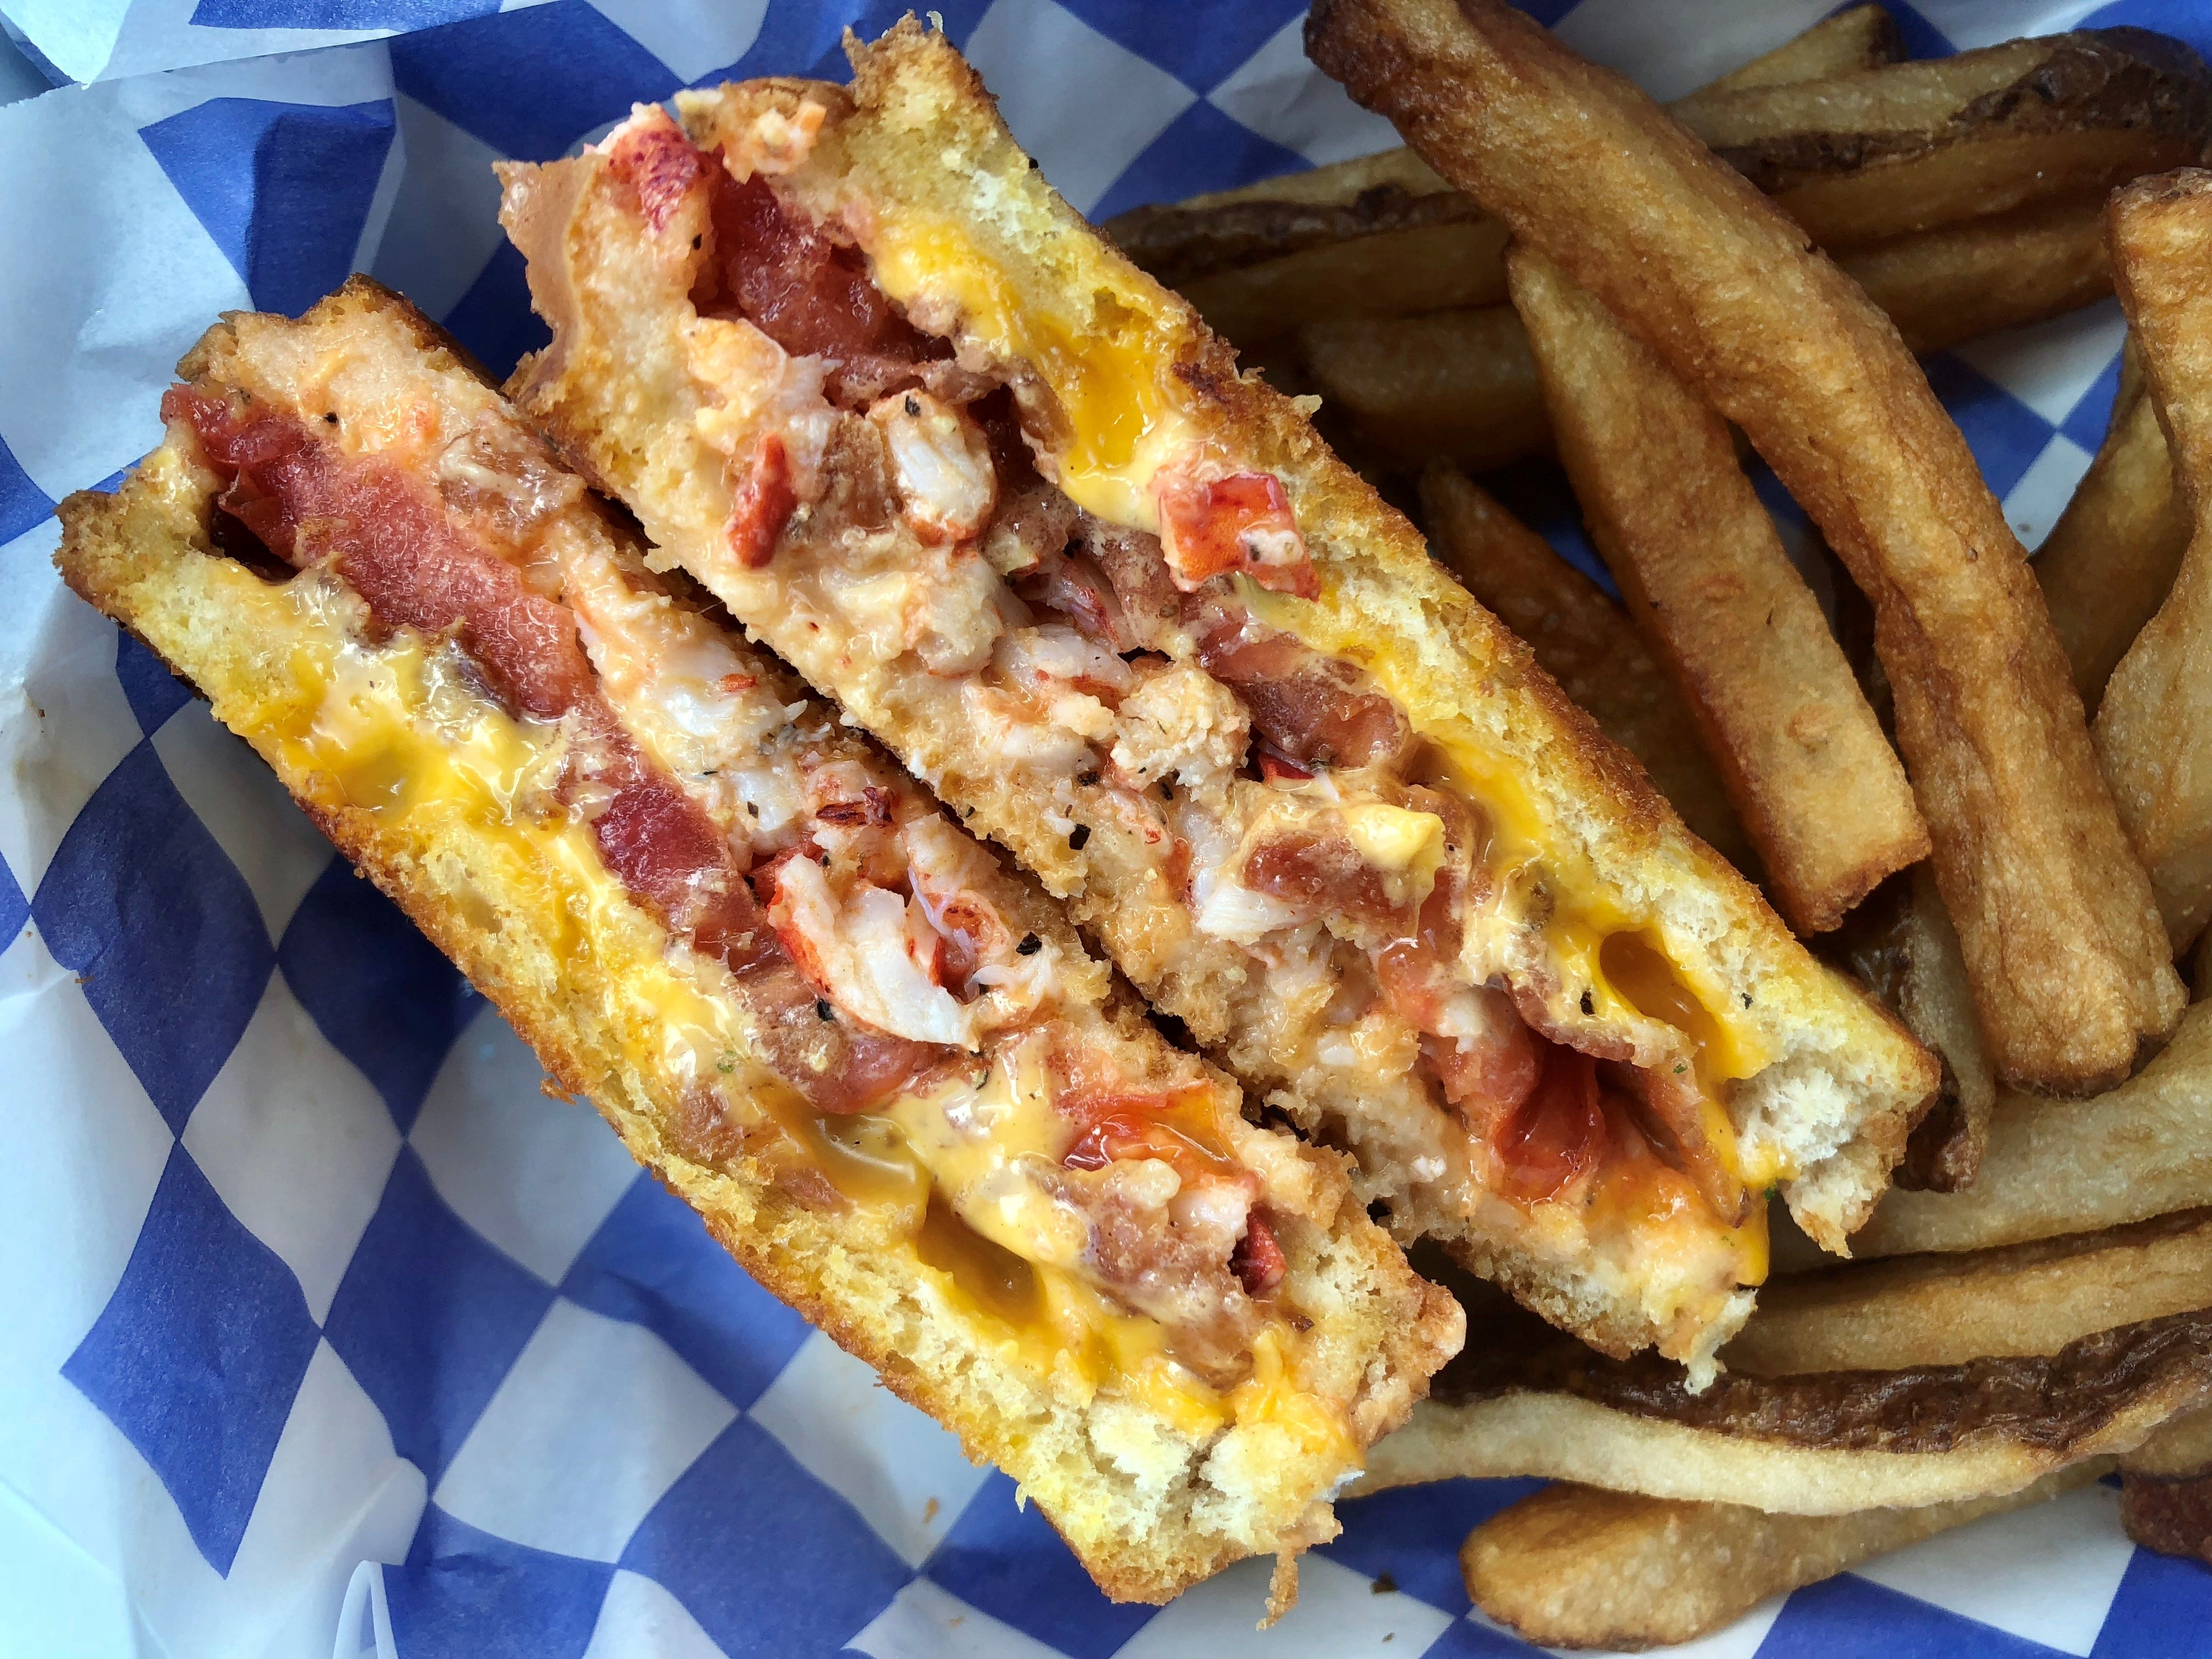 The Lobstah Grilled Cheese from Cape Cod Fish Co.